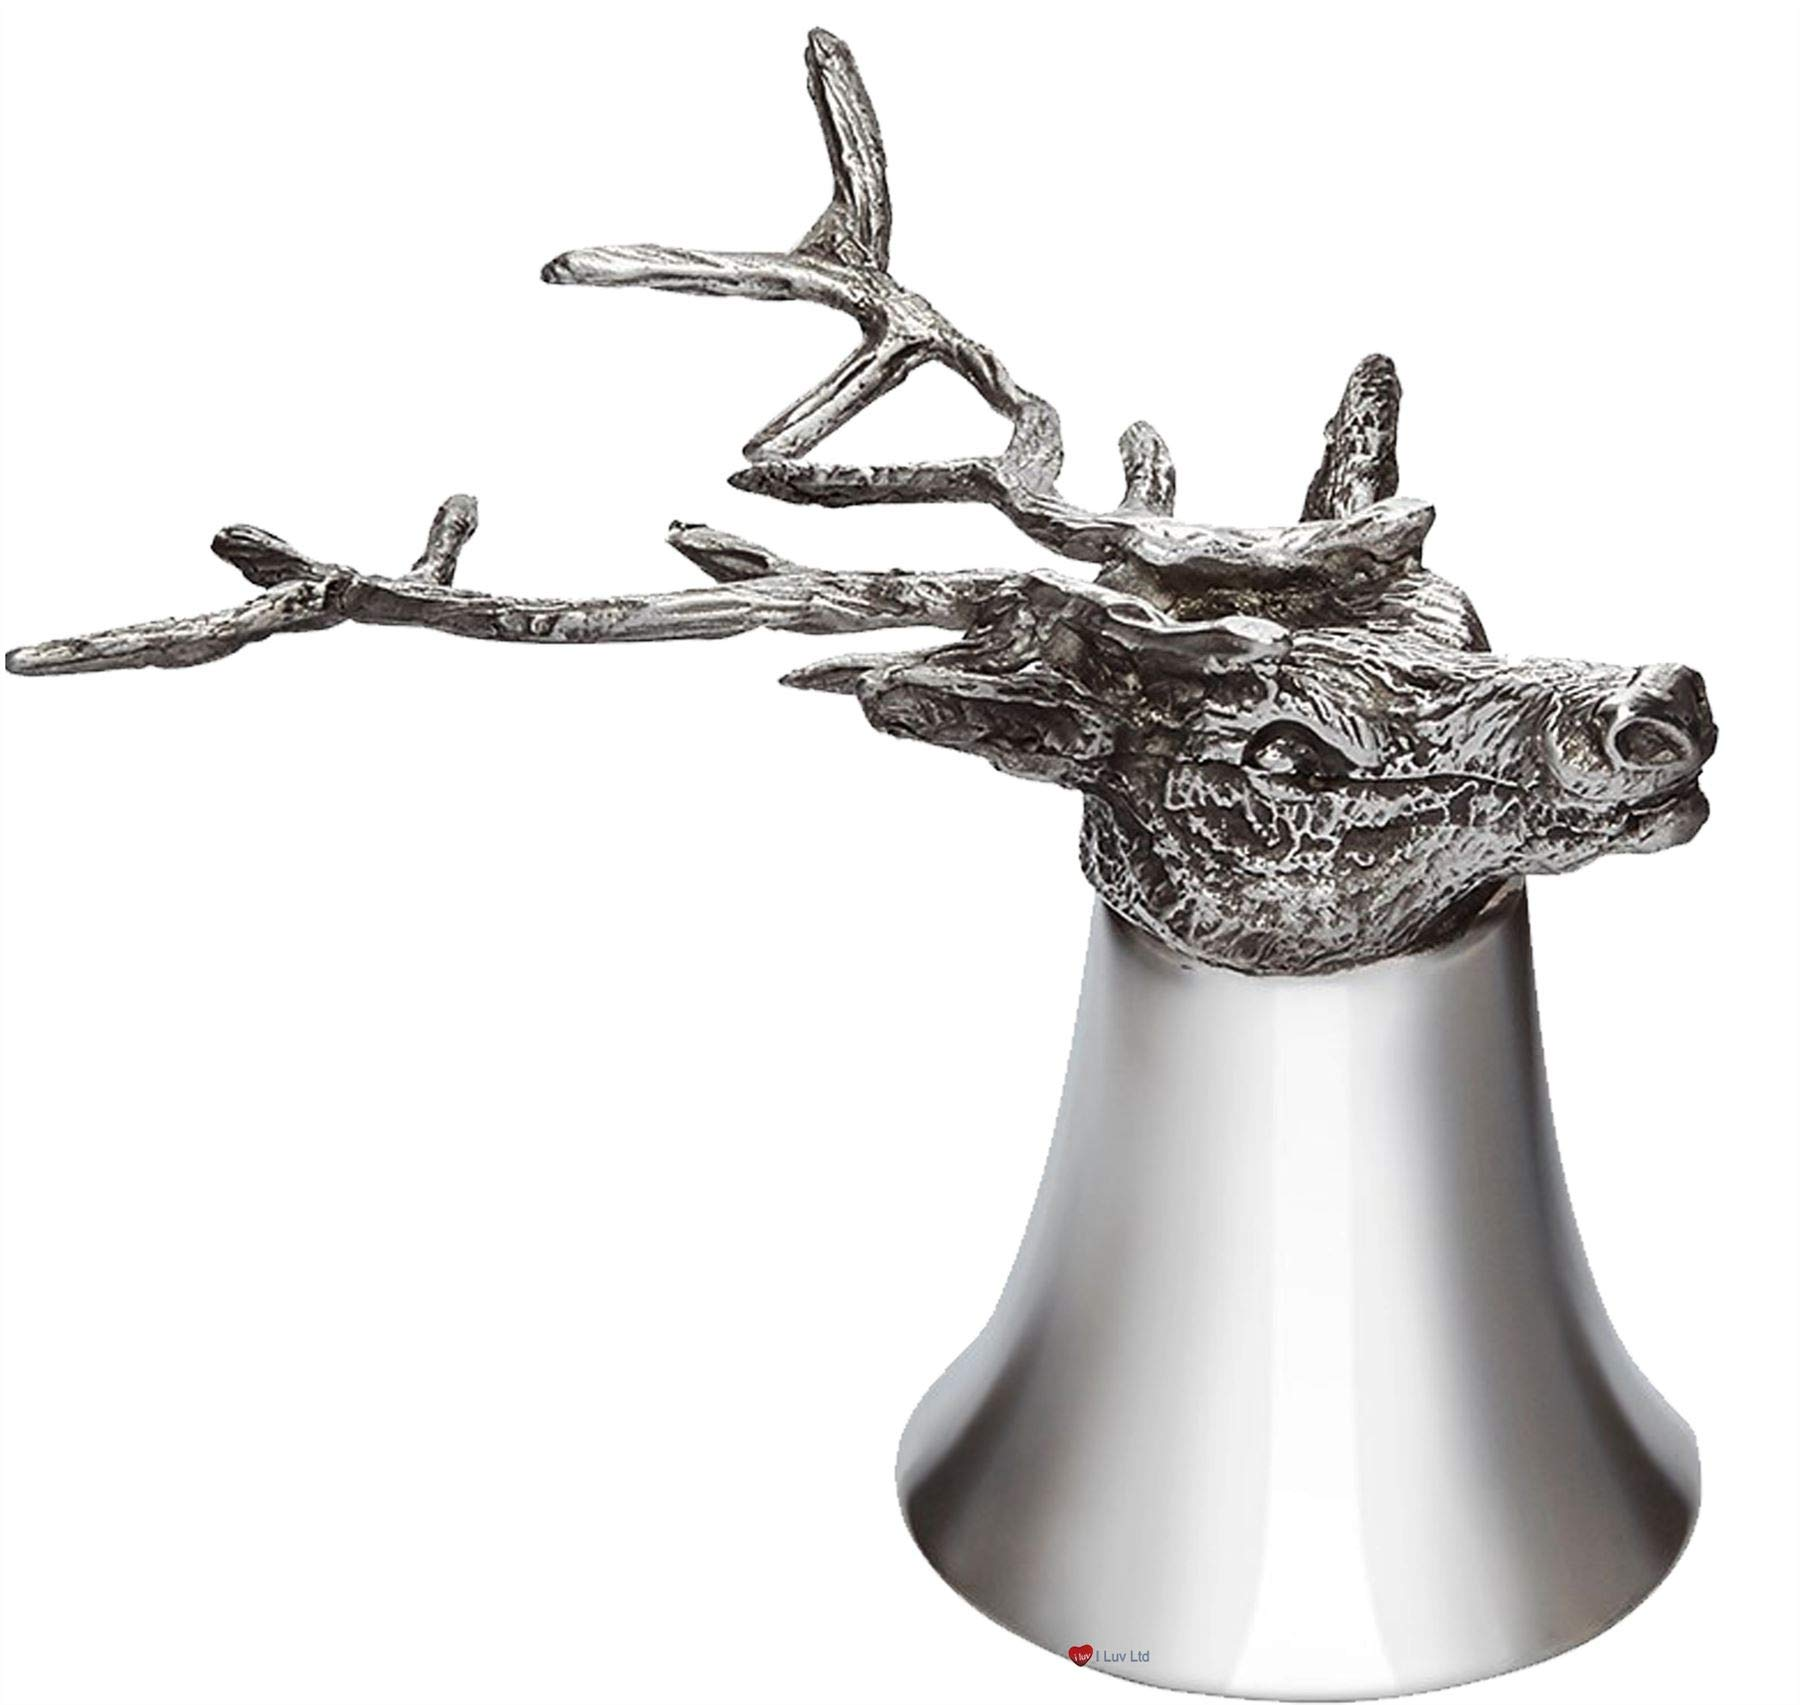 Pewter Jigger Measure or Stirrup Cup with Stag Head - 3 oz by iLuv